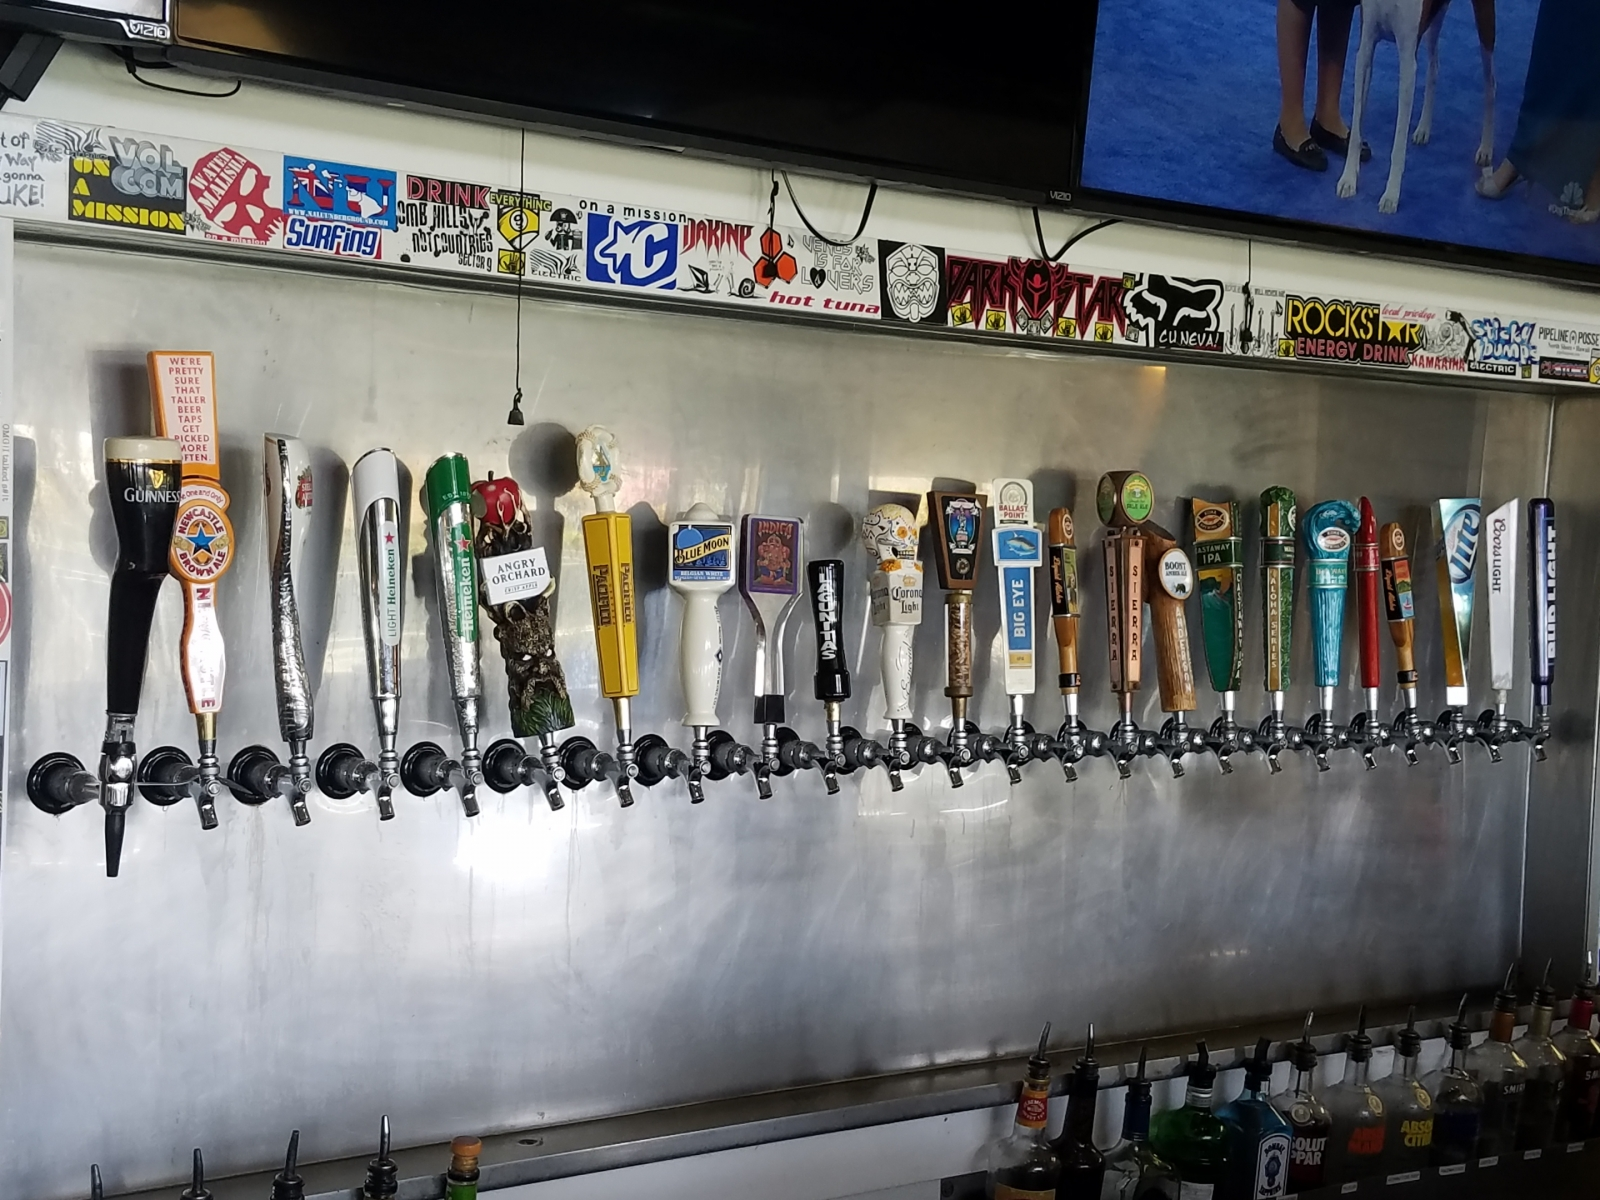 Expanded to 24 taps